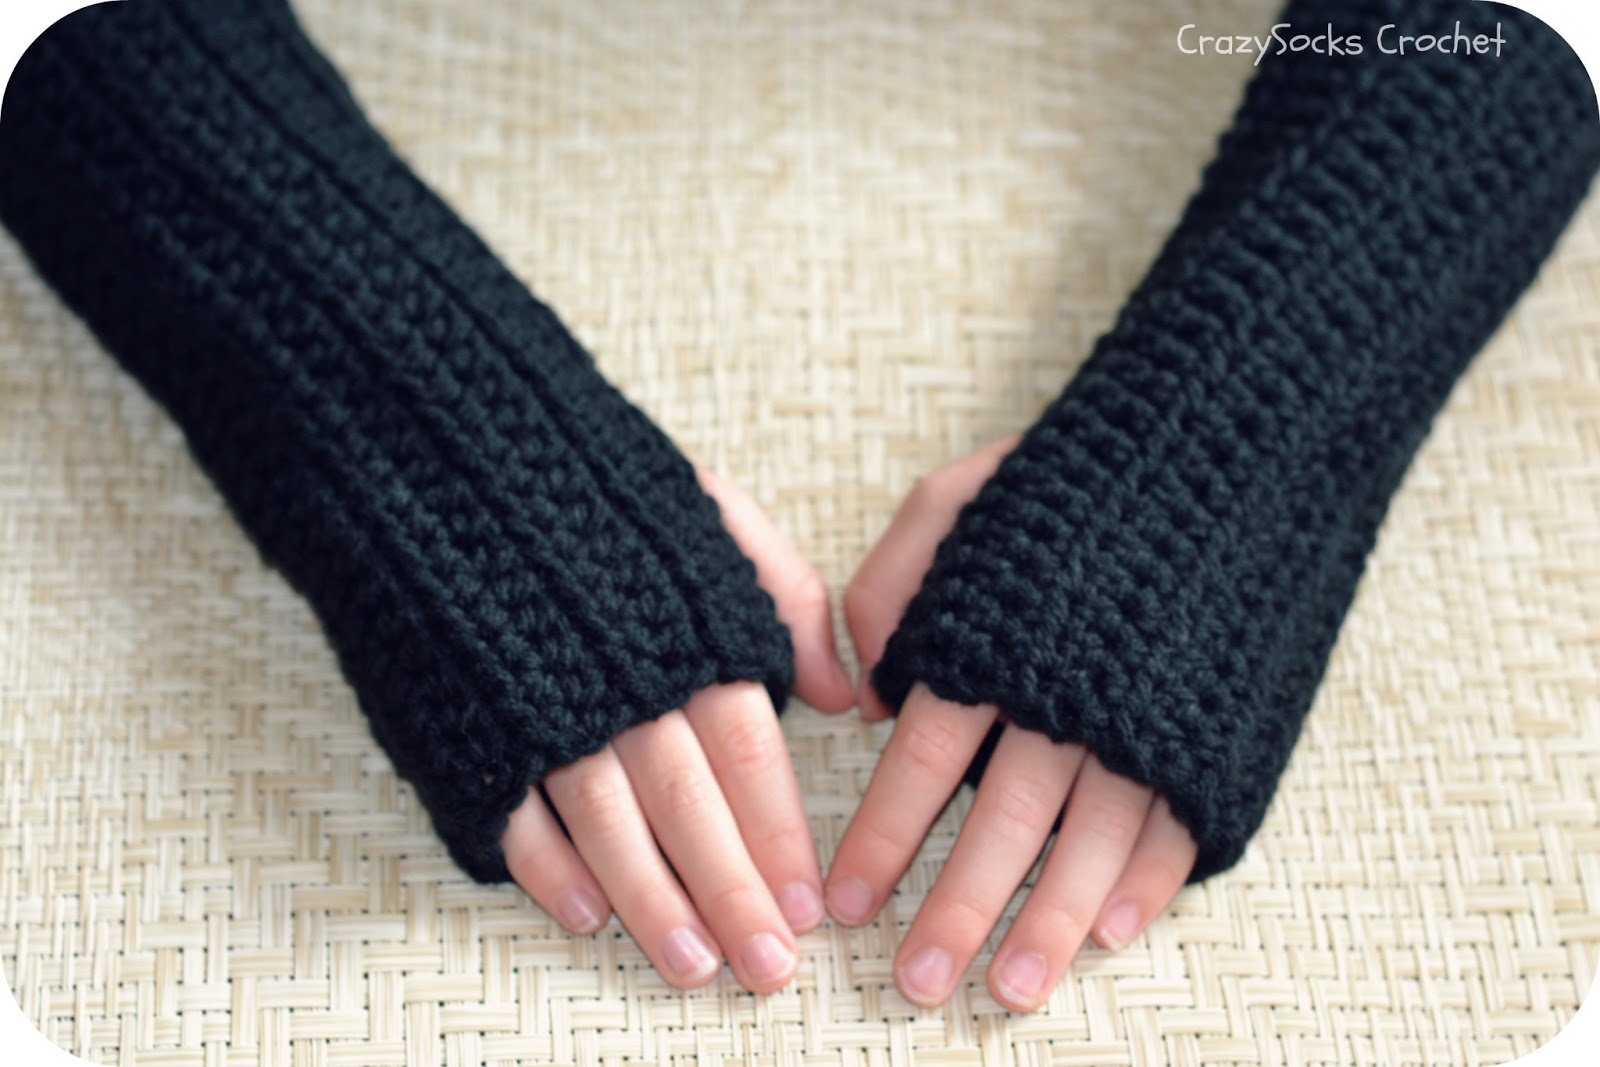 CROCHET PATTERN - Wrist Warmers